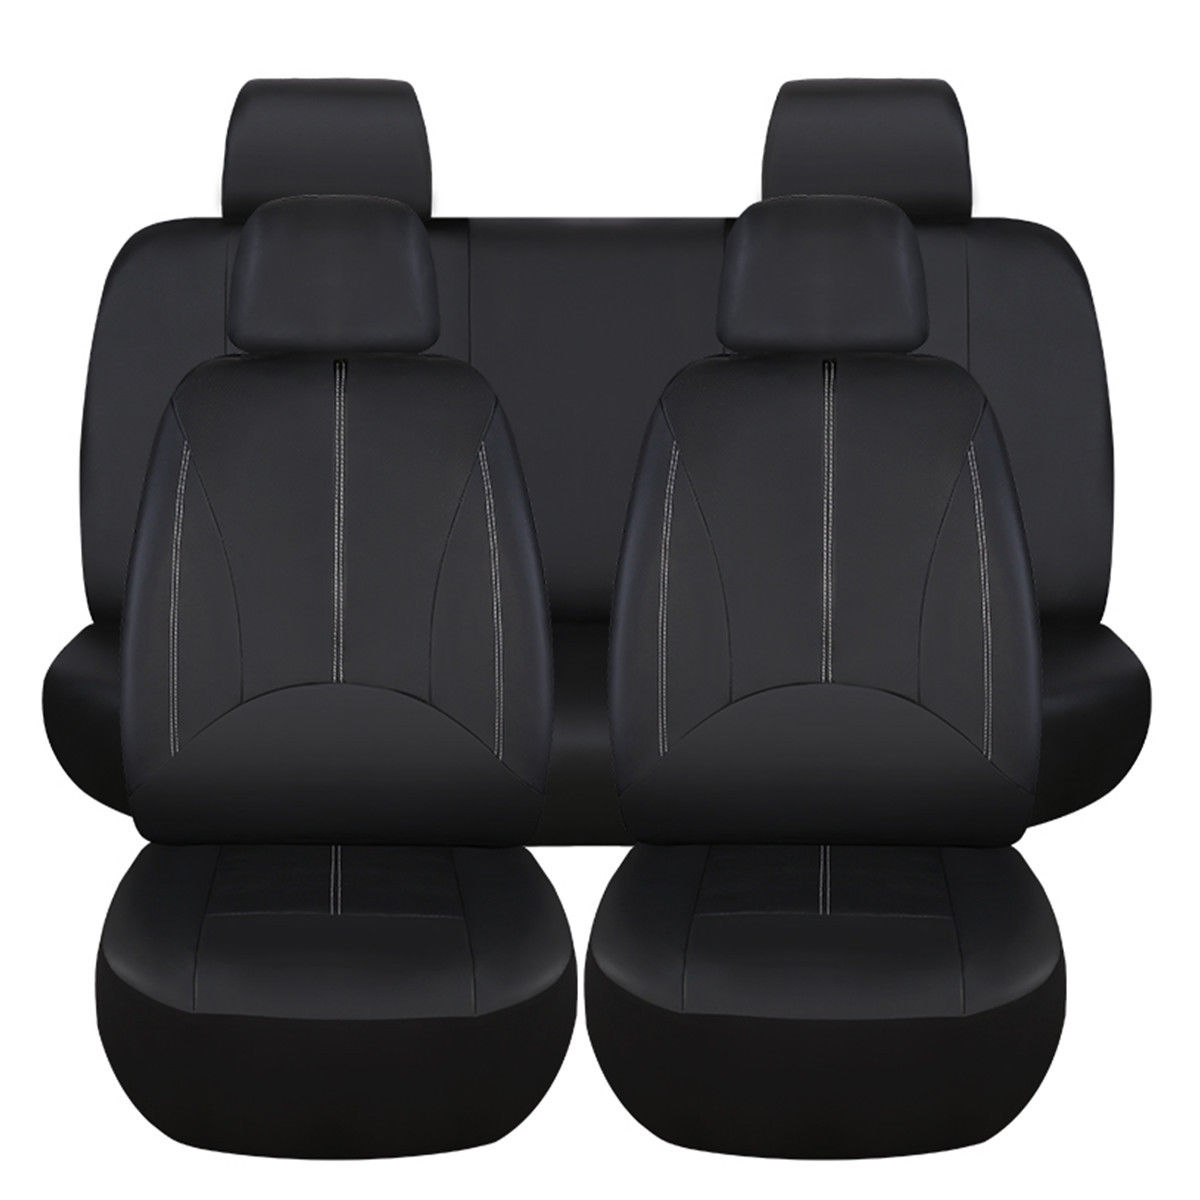 9Pcs PU Leather Black Car Full Surround Seat Cover Cushion Protector Set Universal for 5 Seats Car